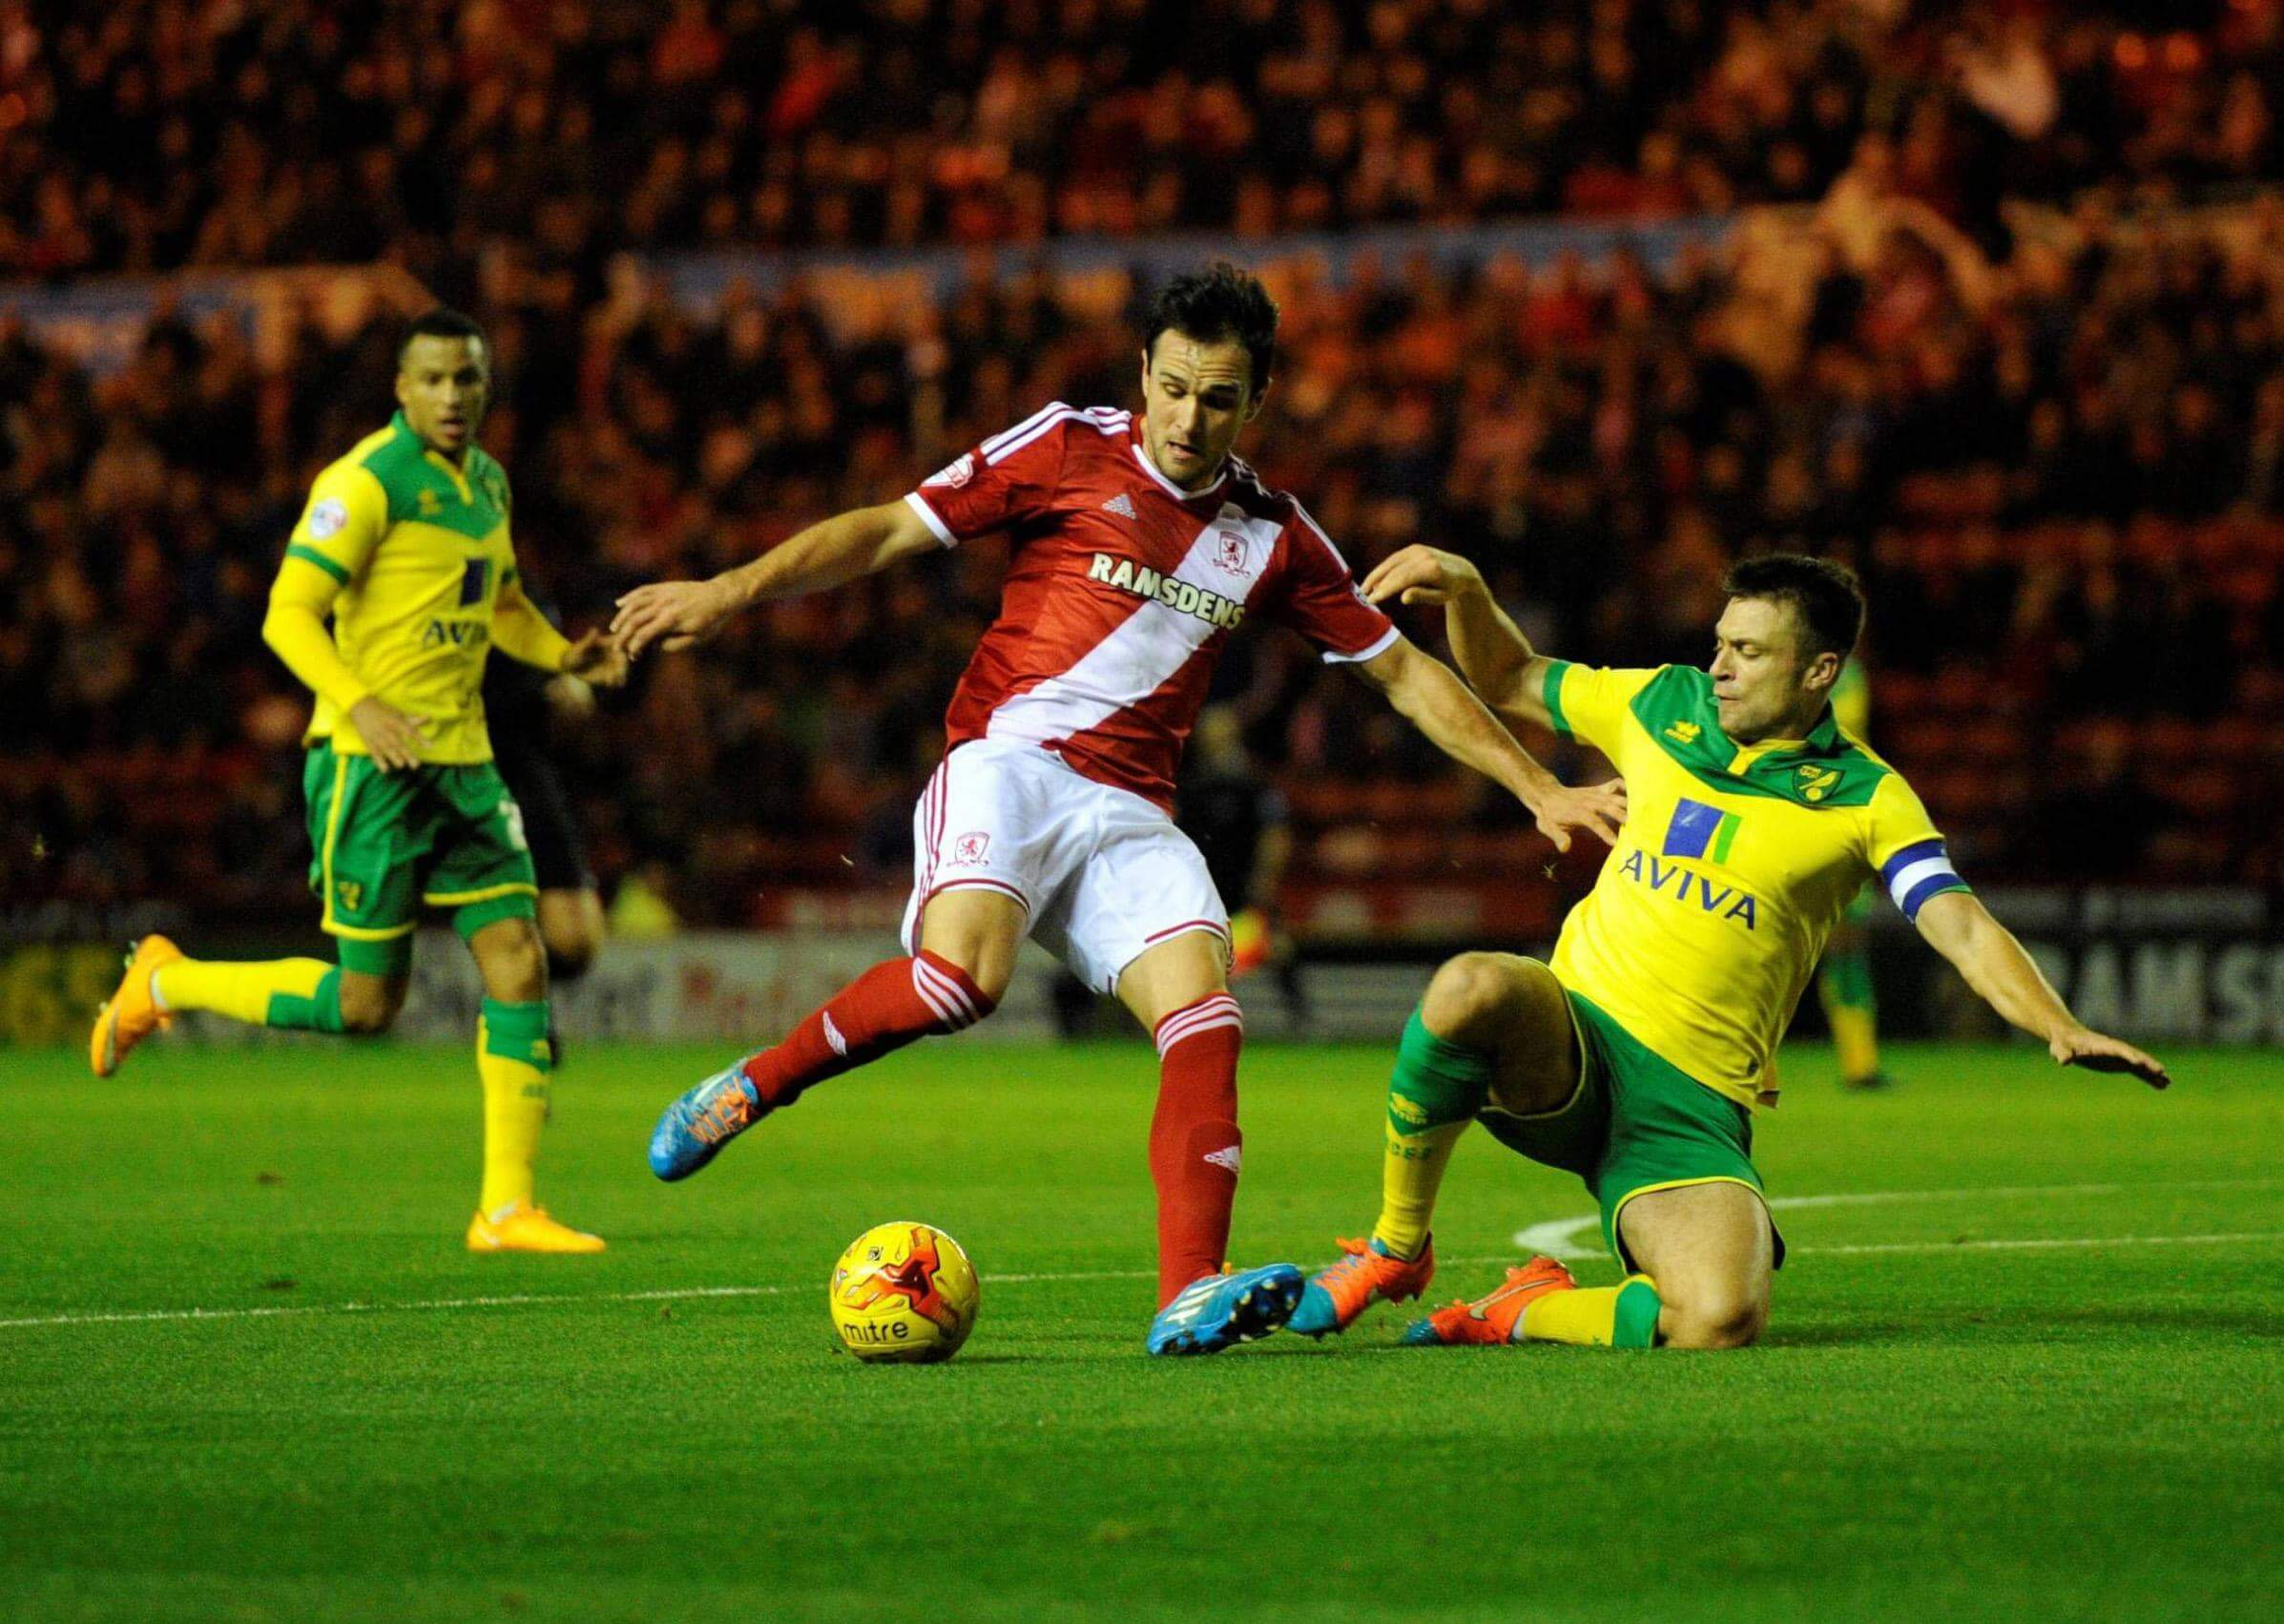 Norwich City - Middlesbrough  Live Streaming 25/5